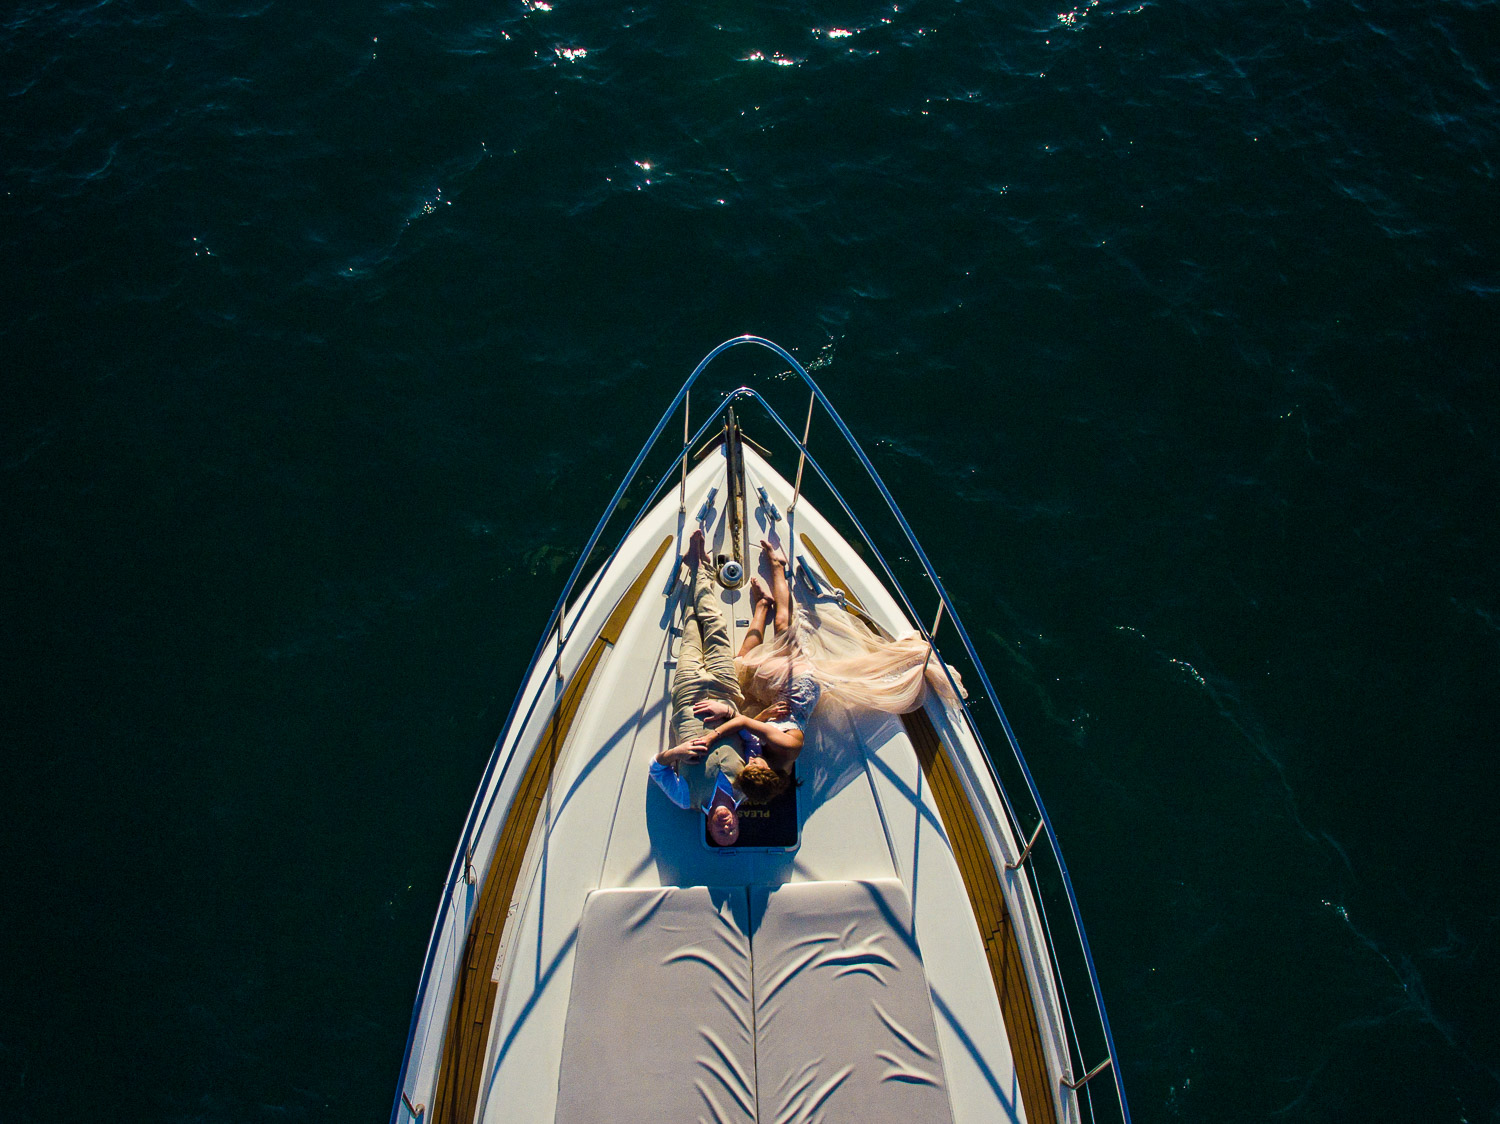 Bride and Groom on their wedding day are posing on a boat for an aerial drone picture by talented GVphotographer. GVphotographer is a destination Cabo Wedding photographer